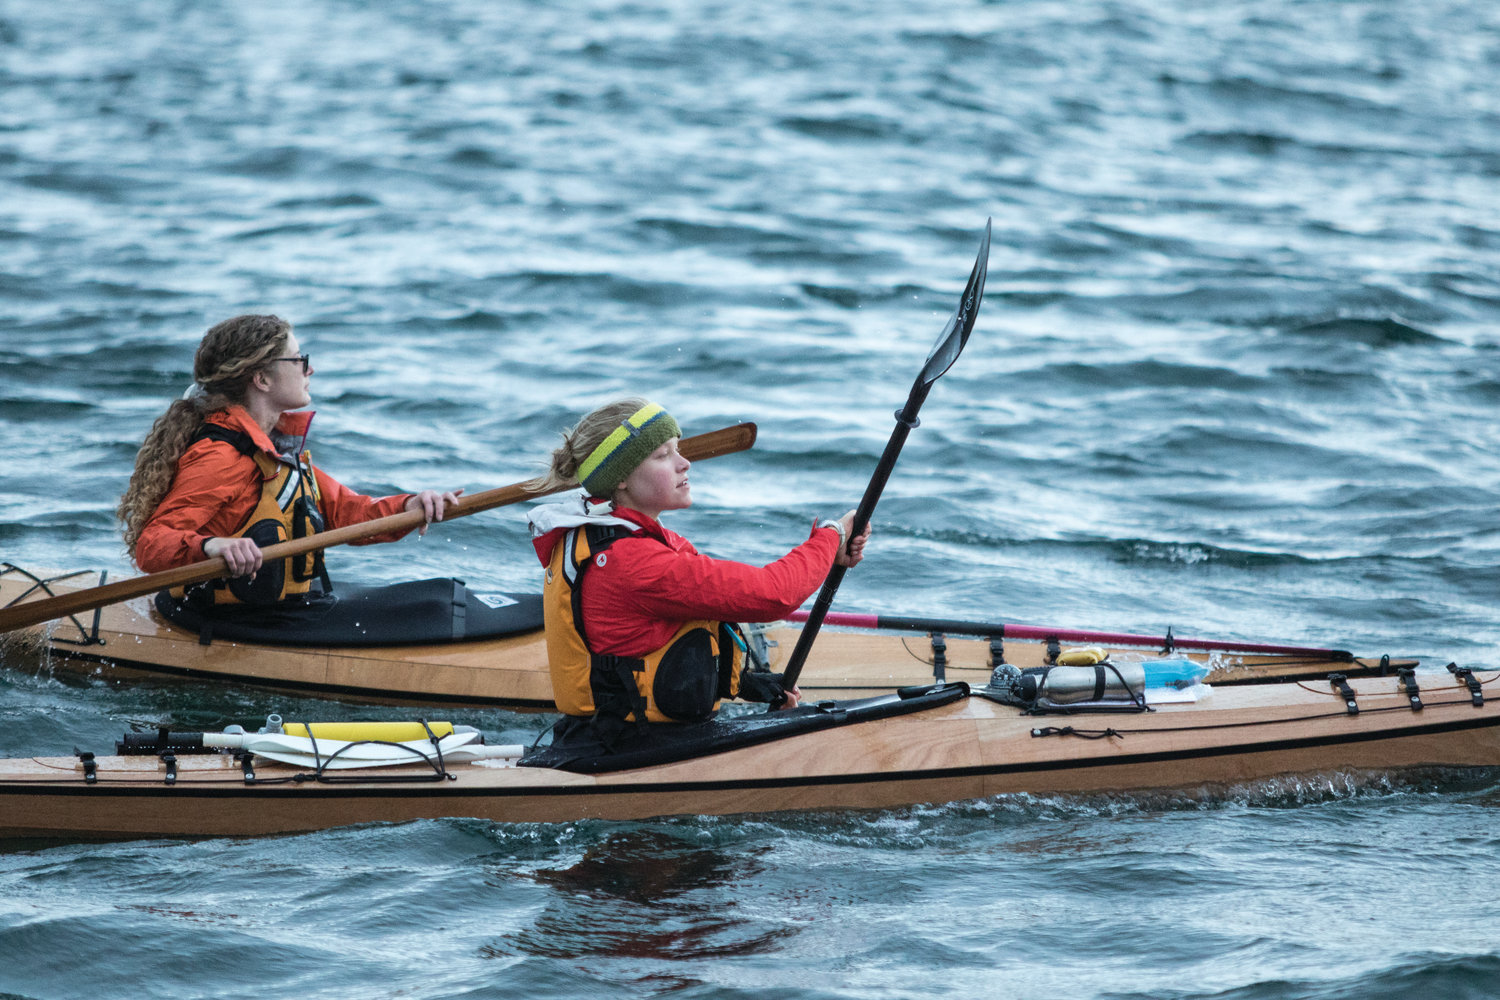 Michelle Knowlen and Lauren Brandkamp are paddling the Proving Grounds, racing from Port Townsend to Victoria in Pygmy kayaks.